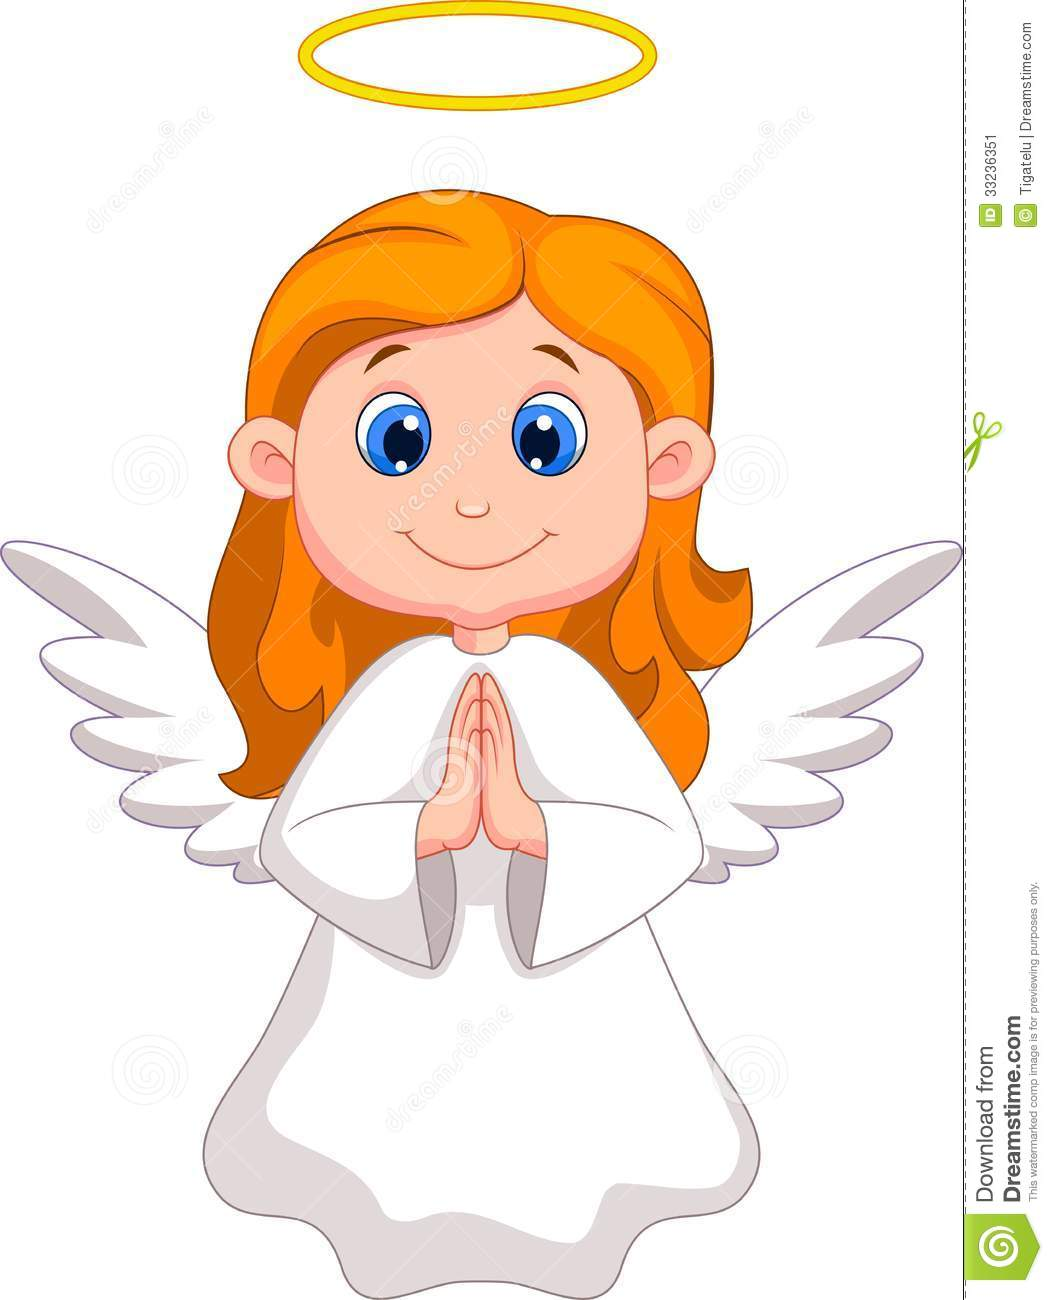 Cute Angel Cartoon Stock Image - Image: 33236351